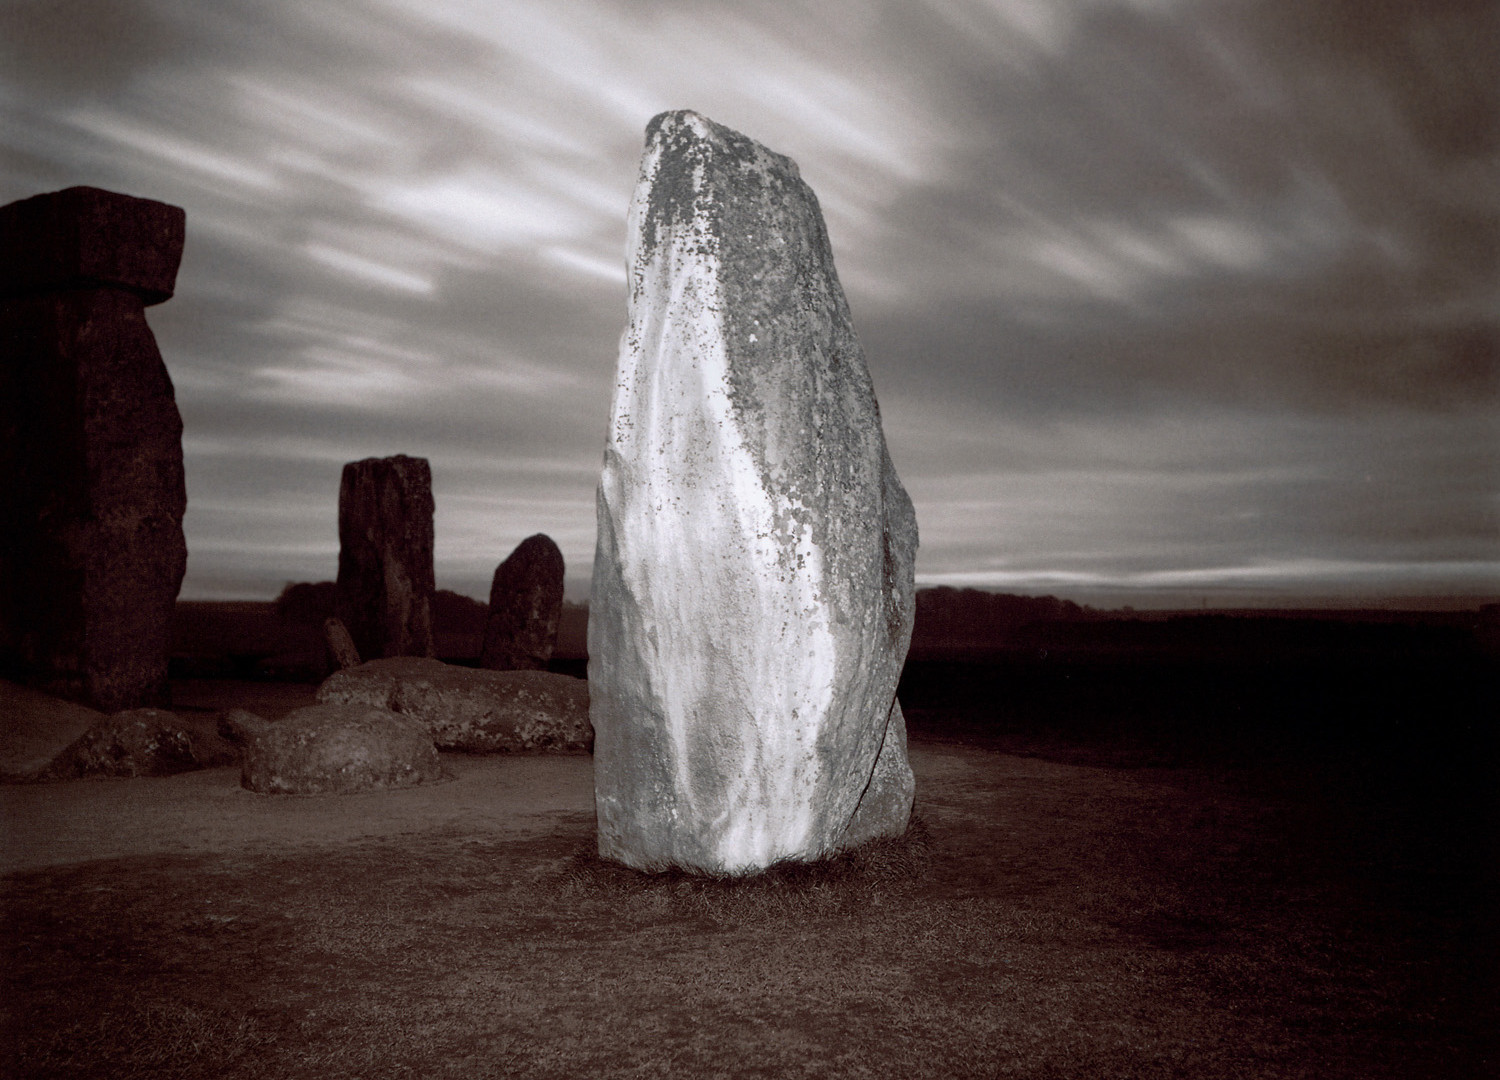 Richard Misrach, Untitled (Stonehenge #4), 1976